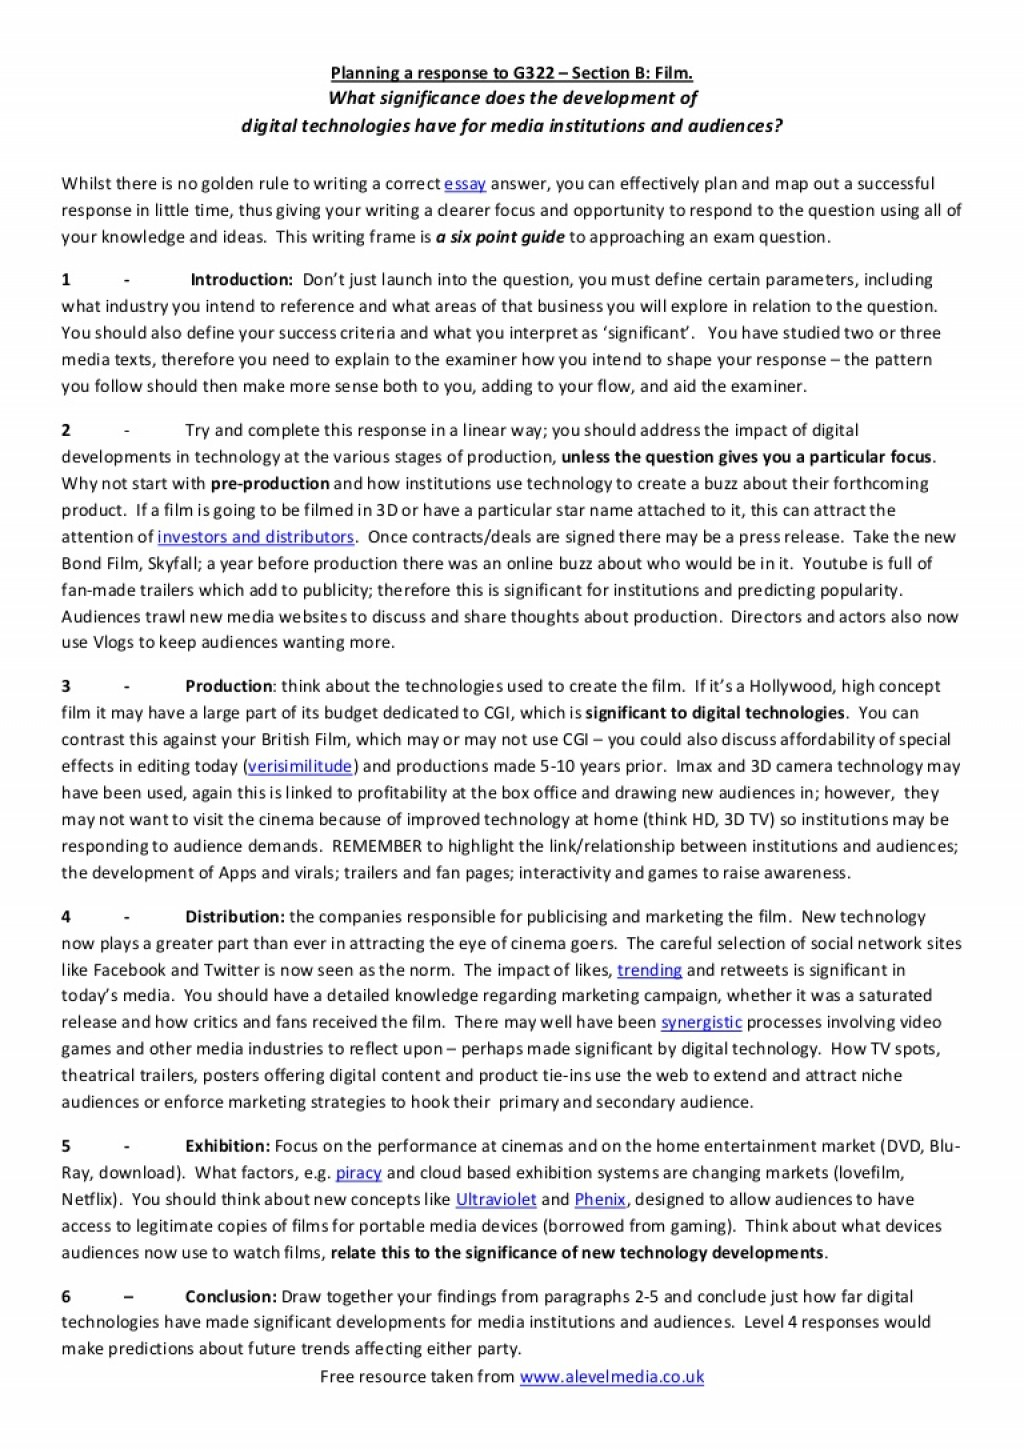 018 Exploratory Essays Modelessayplanforag322mediastudiesfilmresponse Phpapp01 Thumbnail Formidable Essay Examples Sample Topics Introduction Large